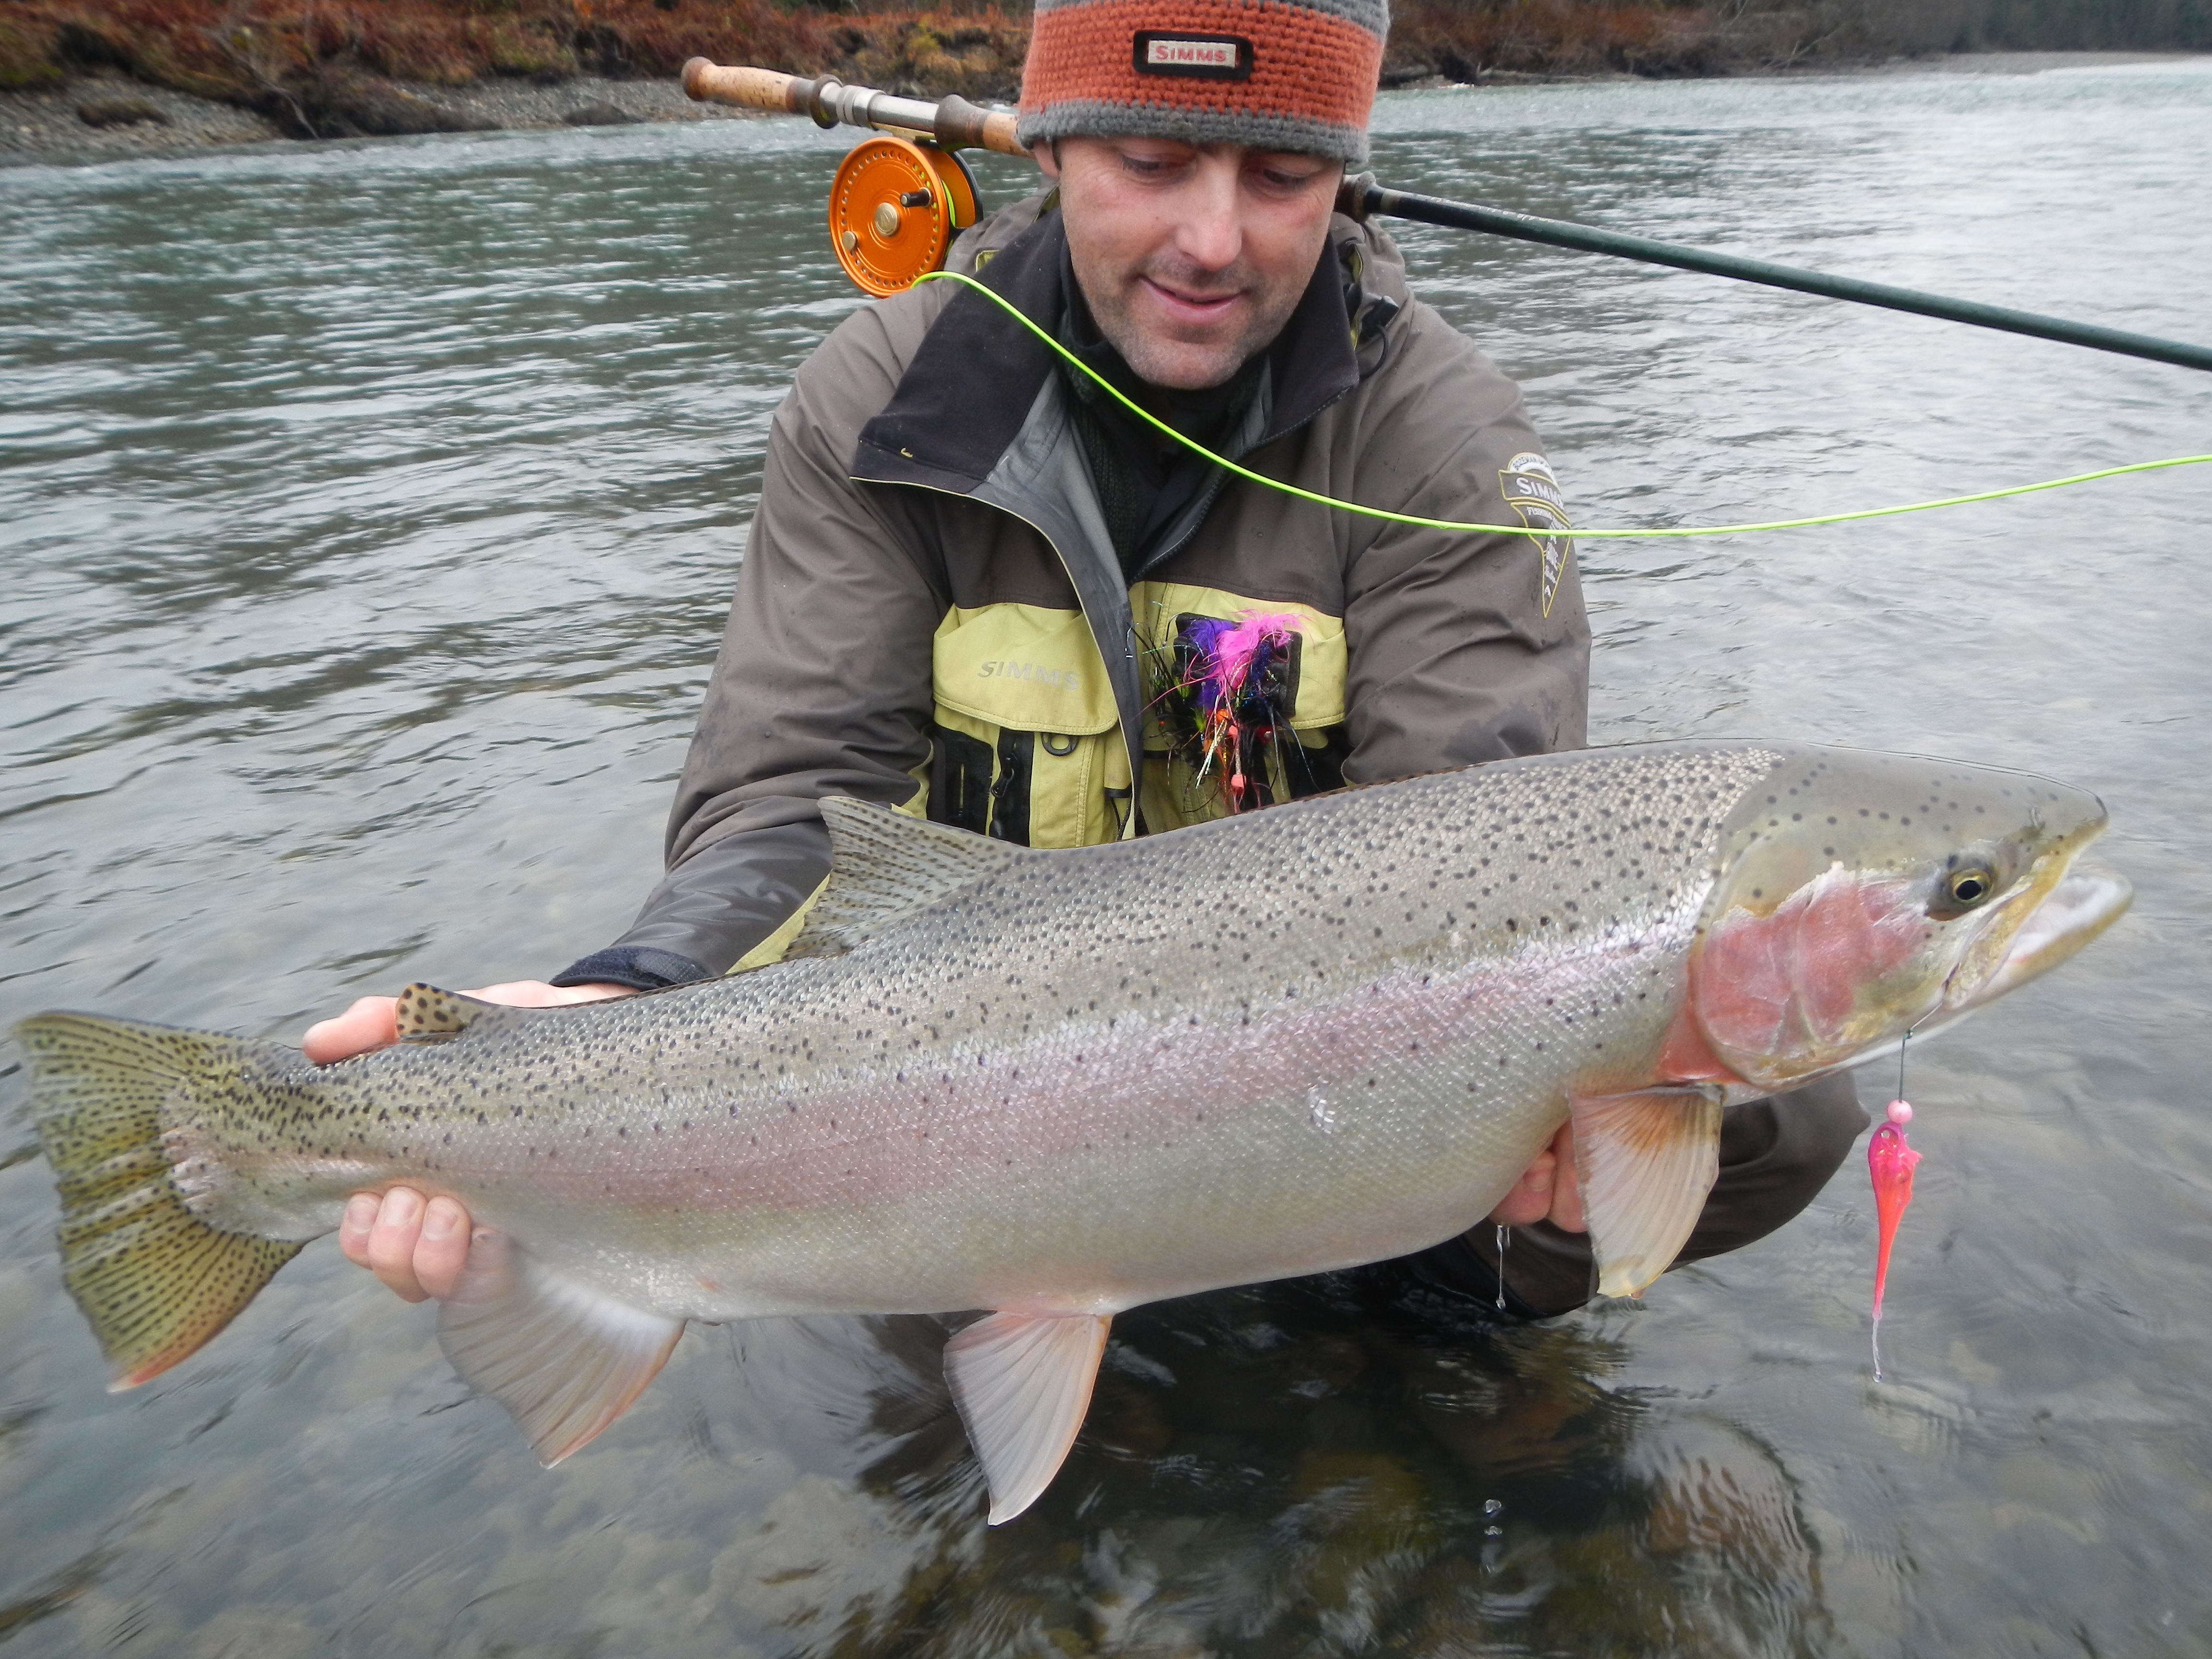 Bc steelhead guides for trophy steelhead salmon on the world bc steelhead guides for trophy steelhead salmon on the world famous skeenanasskitimat rivers westcoast fishing adventures sciox Image collections